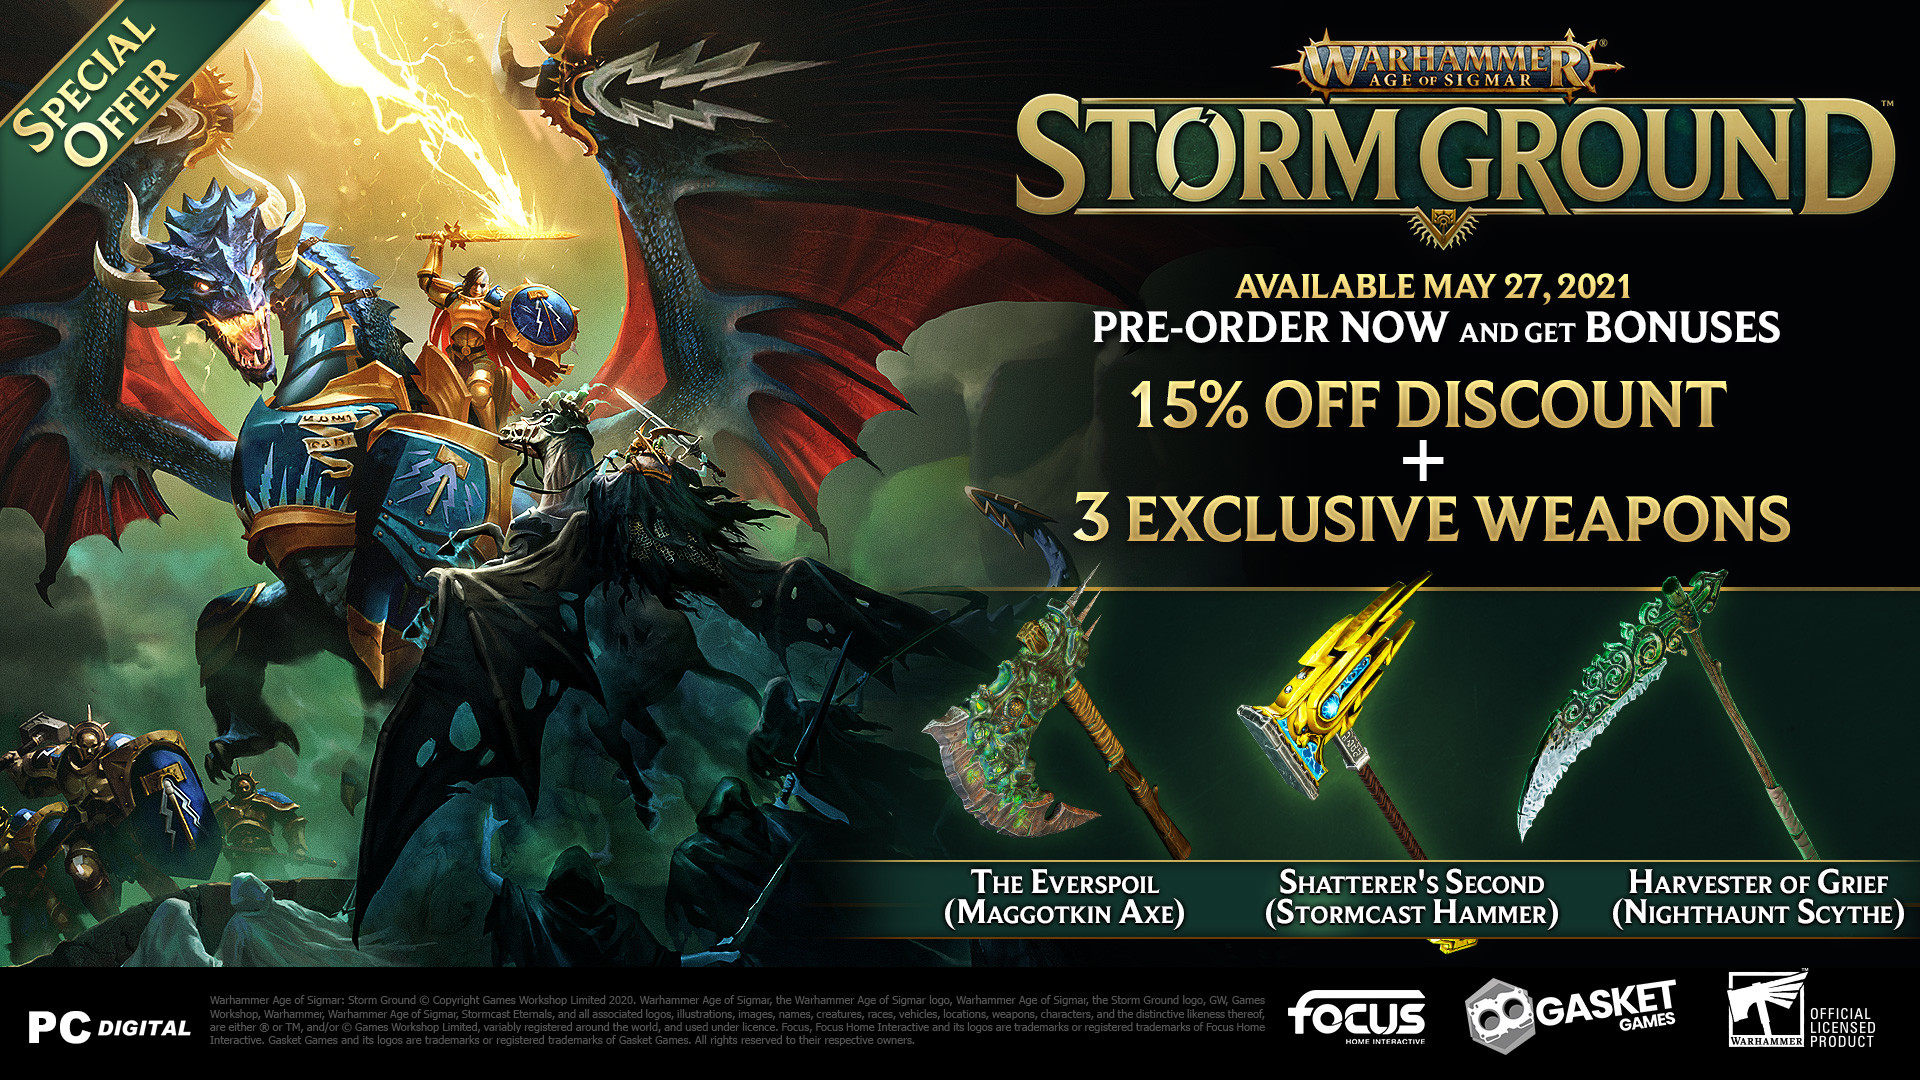 Warhammer Age of Sigmar: Storm Ground Launches